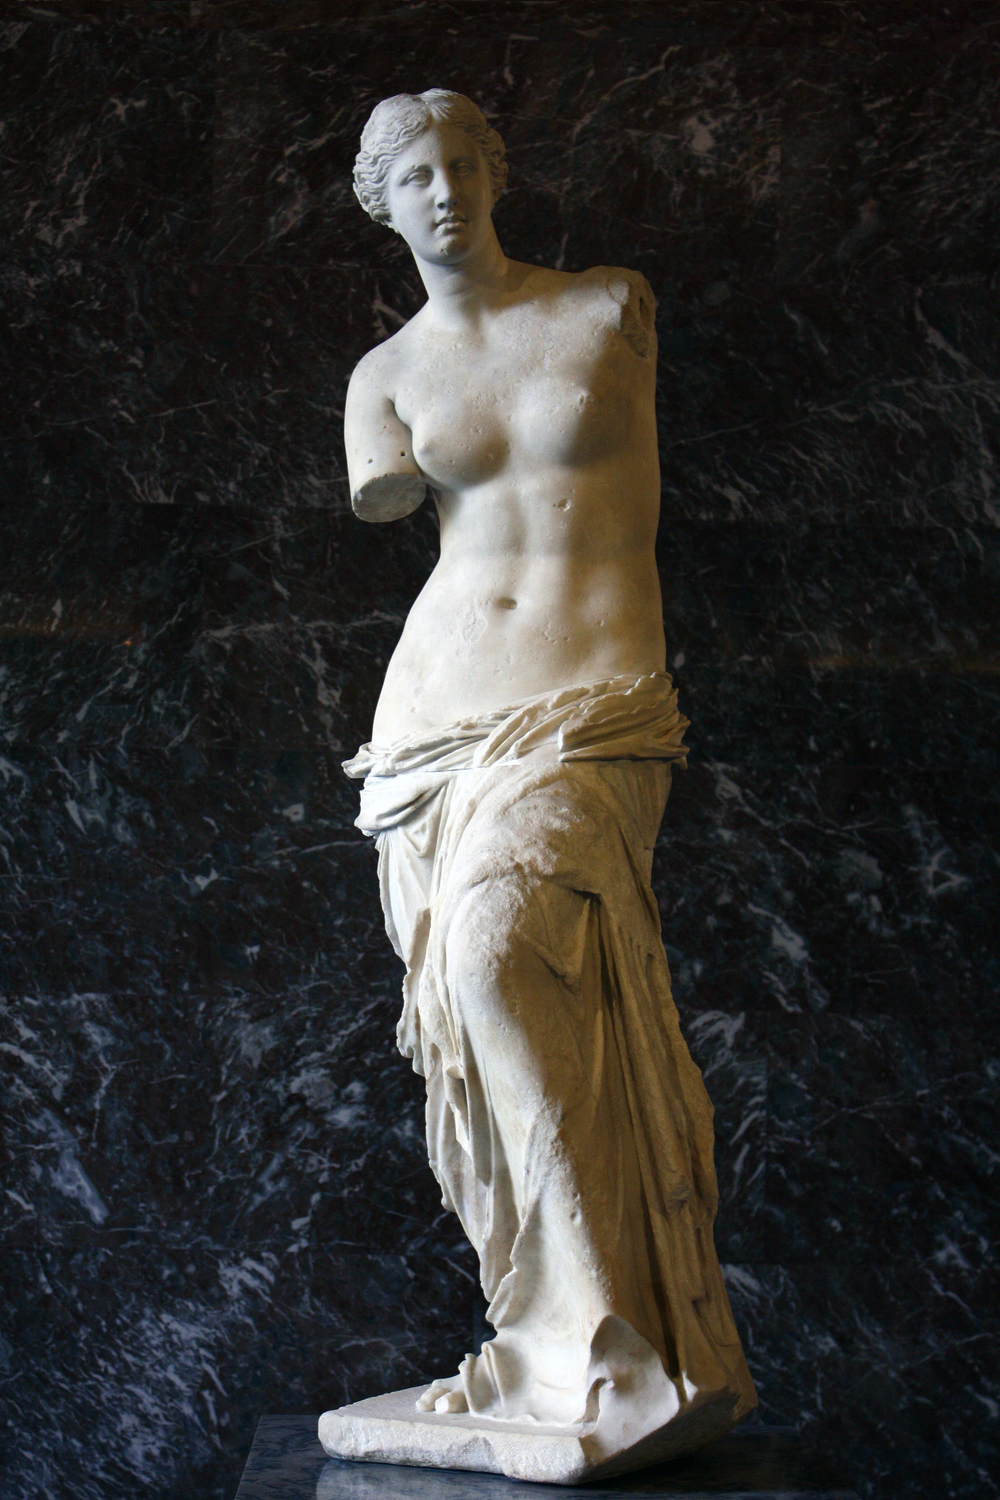 Venus de Milo - Greek Sculpture - Wikipedia